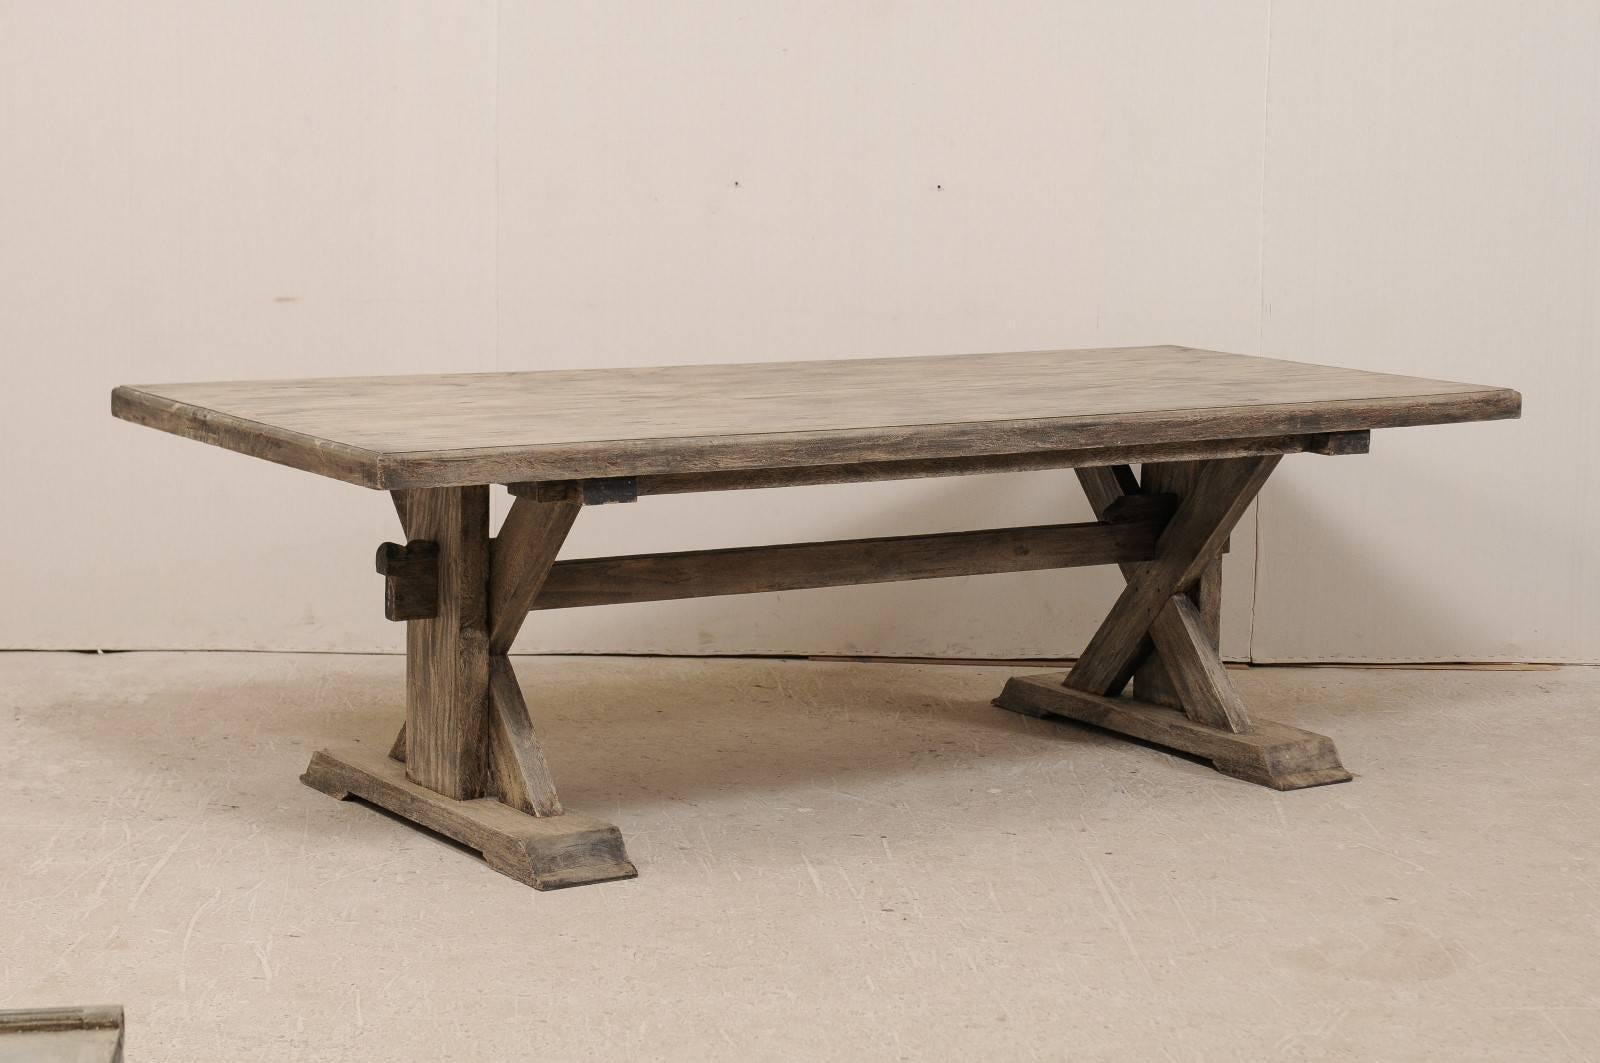 An American Trestle Base Dining Room Table. This 8.5 Foot Long, Vintage  American Trestle